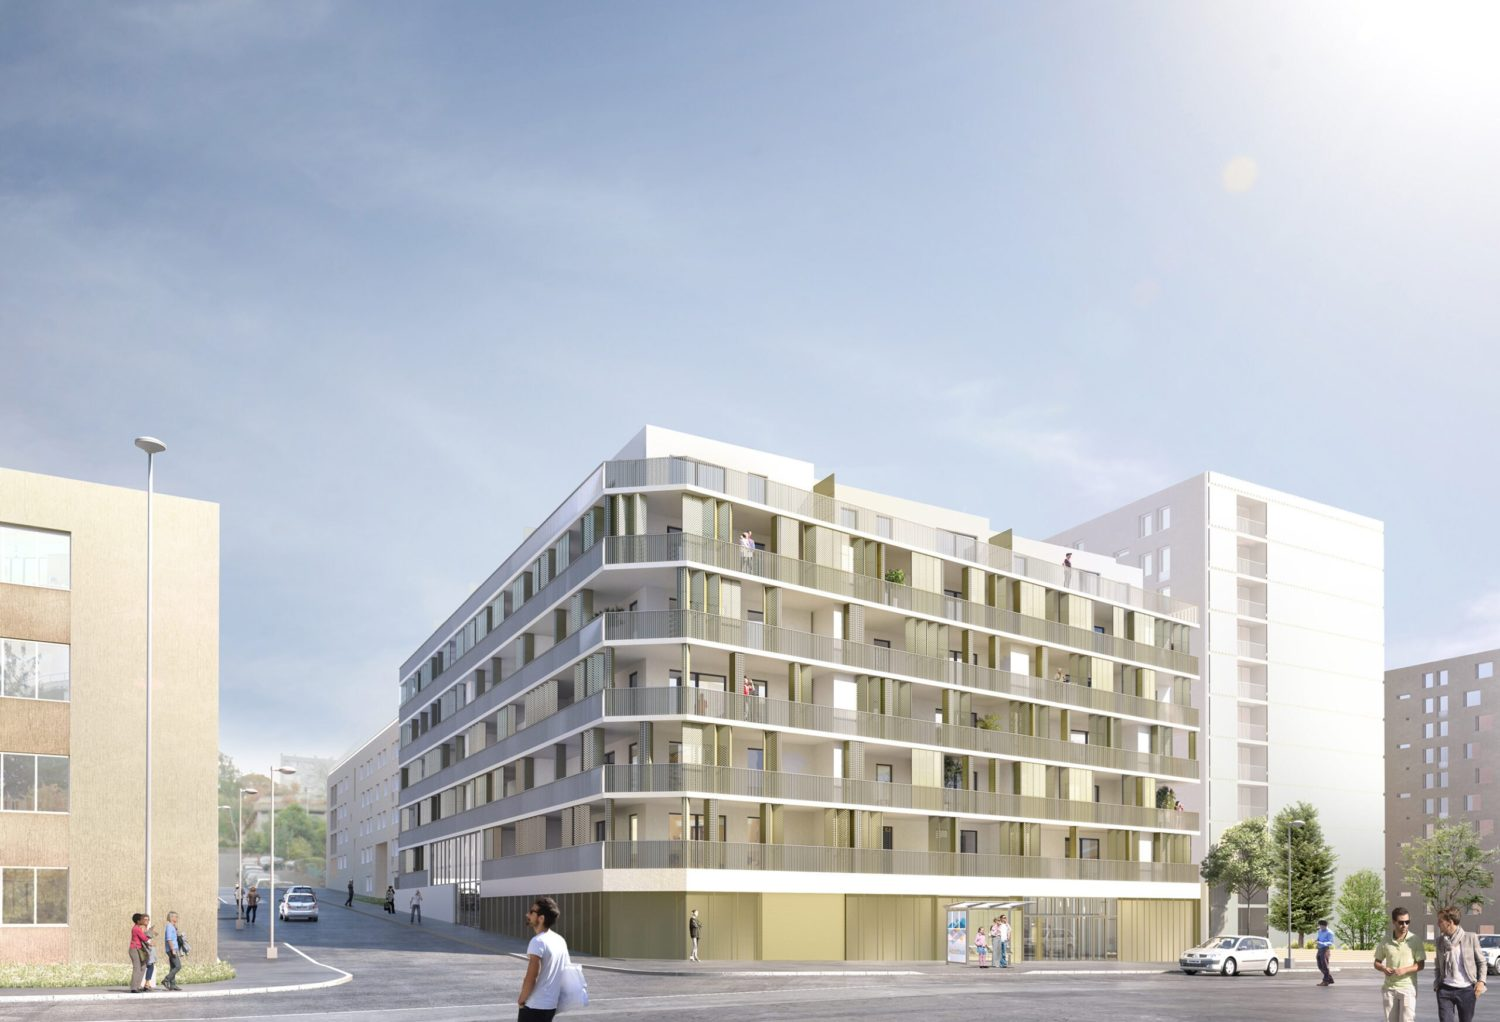 https://www.transform-architecture.com/wp-content/uploads/2020/12/BGN-Transform-Logements-Bagnolet-vue-rue-06-scaled-e1610448230559.jpg